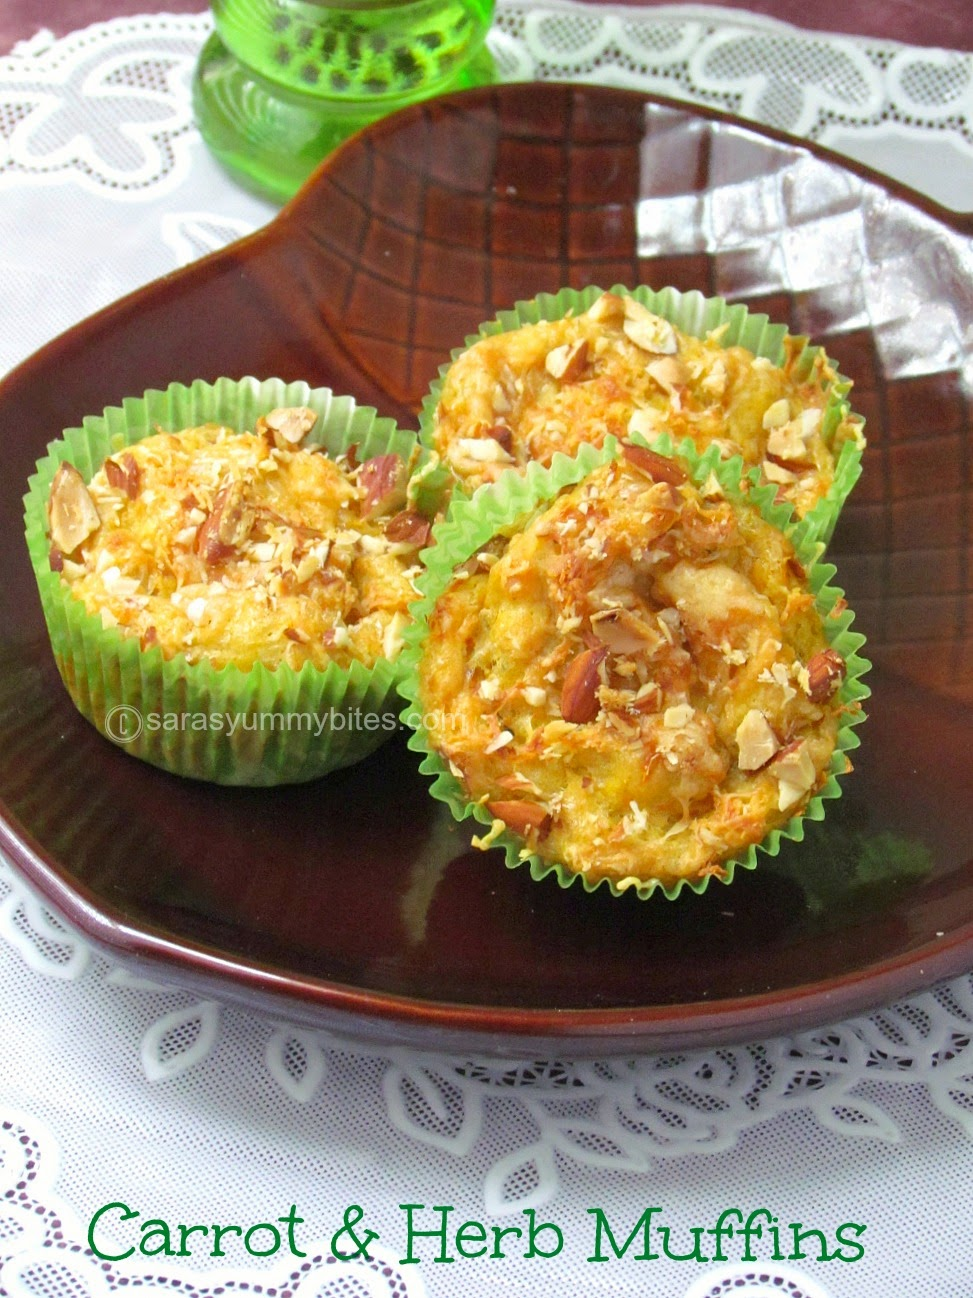 Eggless Carrot & Herb Muffins